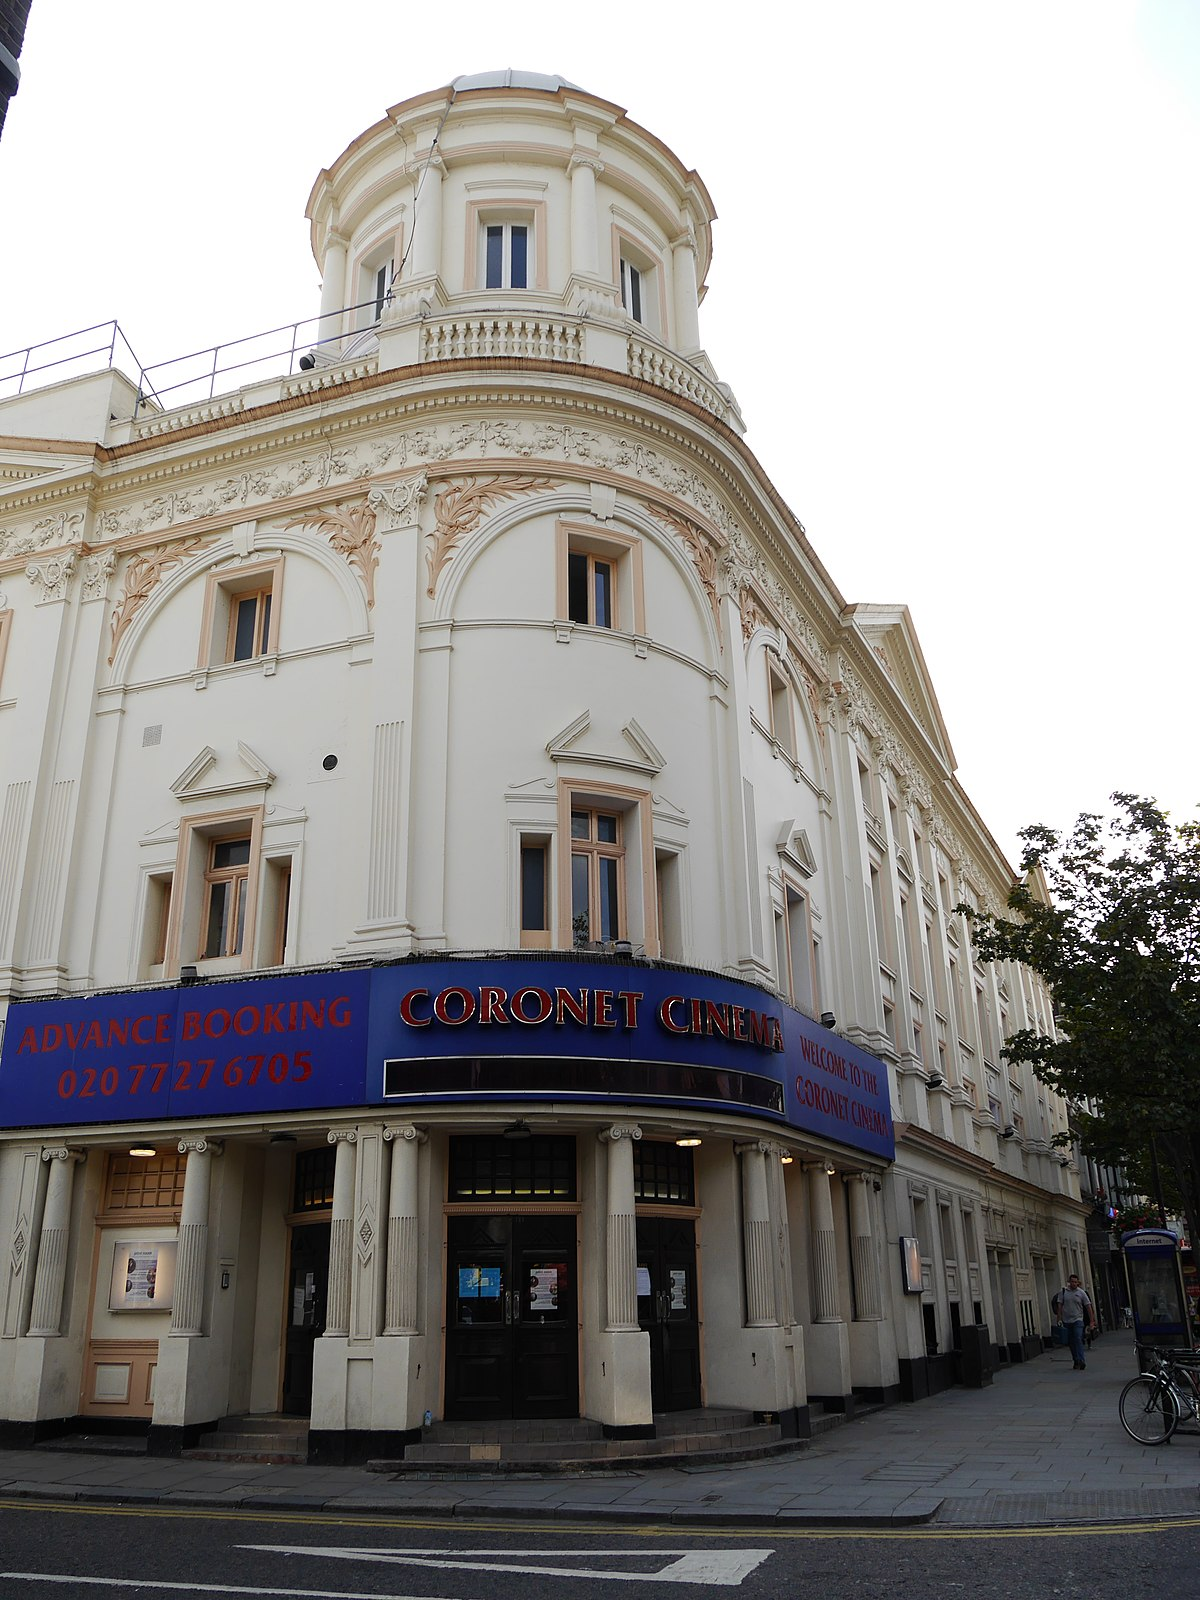 Coronet Cinema Notting Hill 87